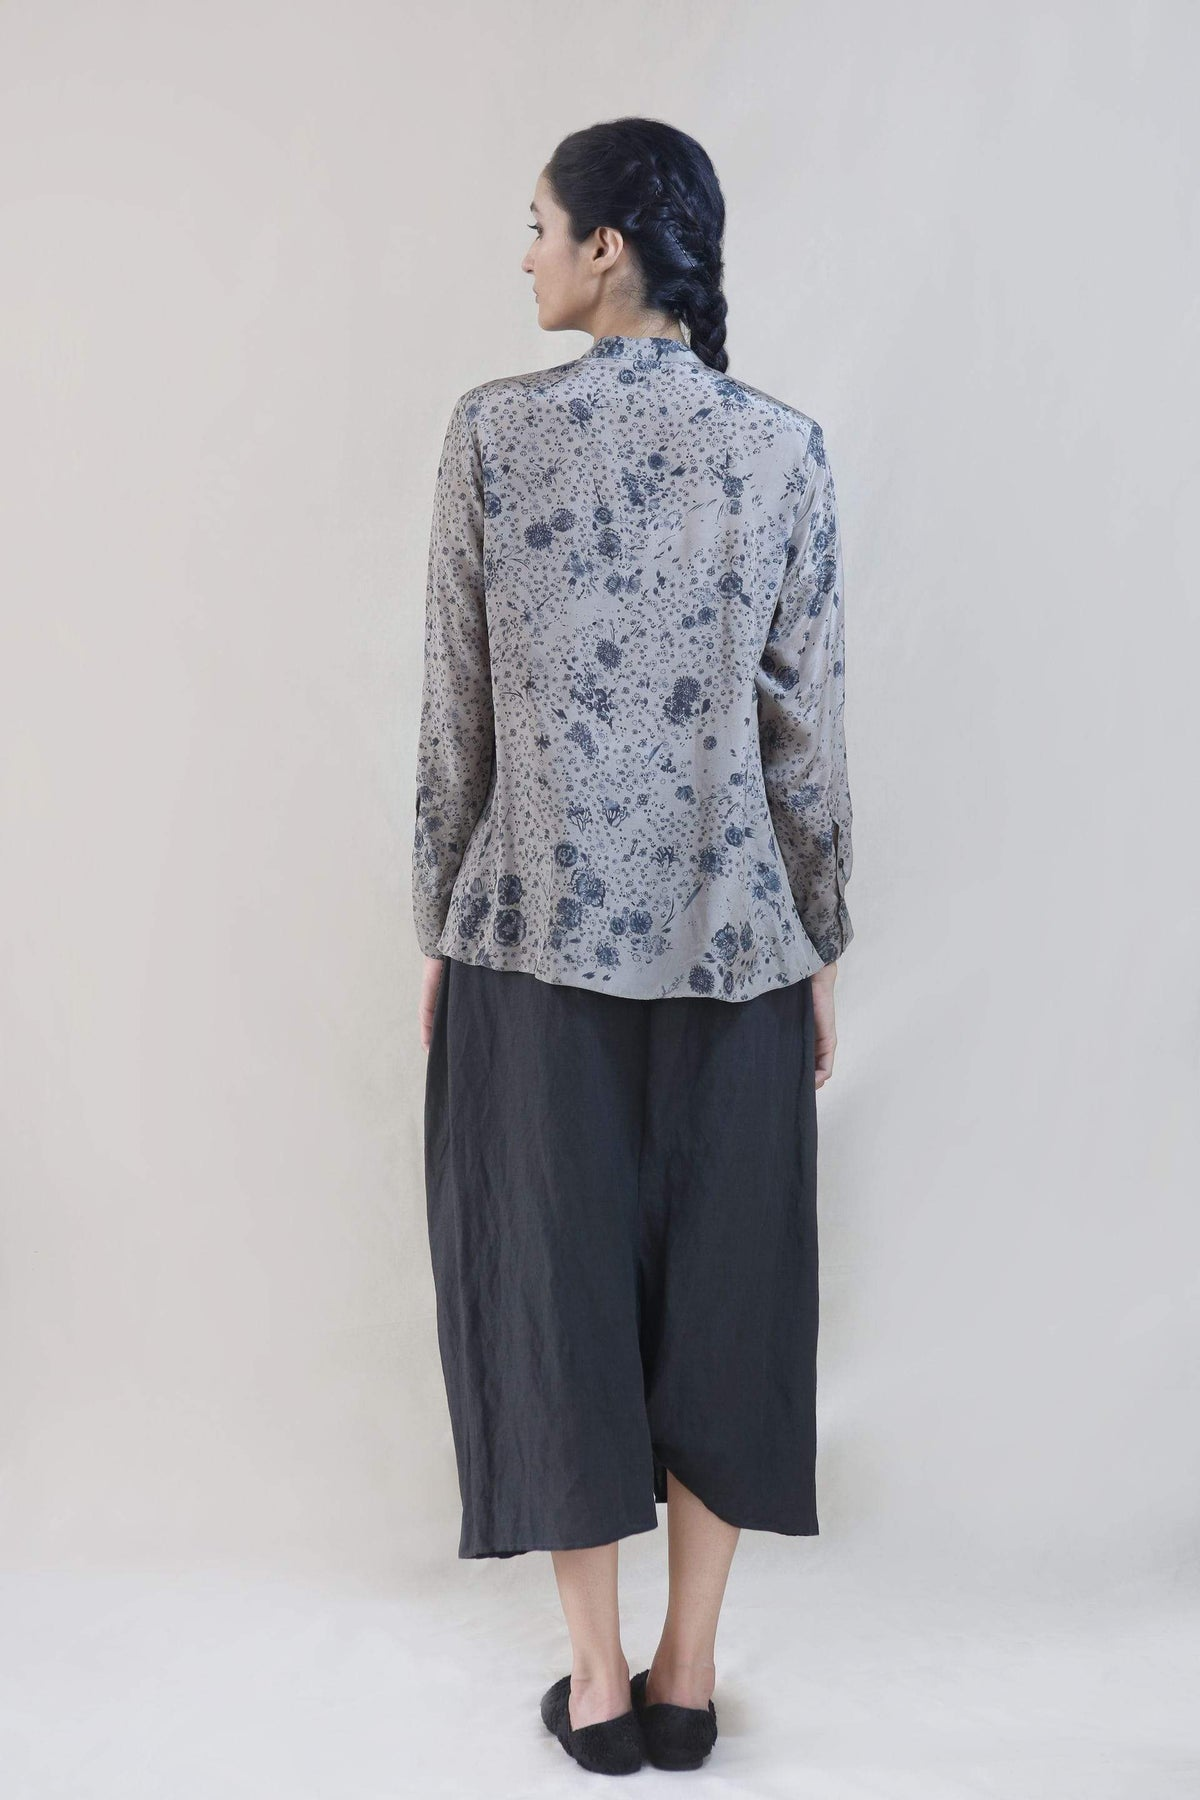 Integument Shirts & Tops Rose print shirt with cinched waist